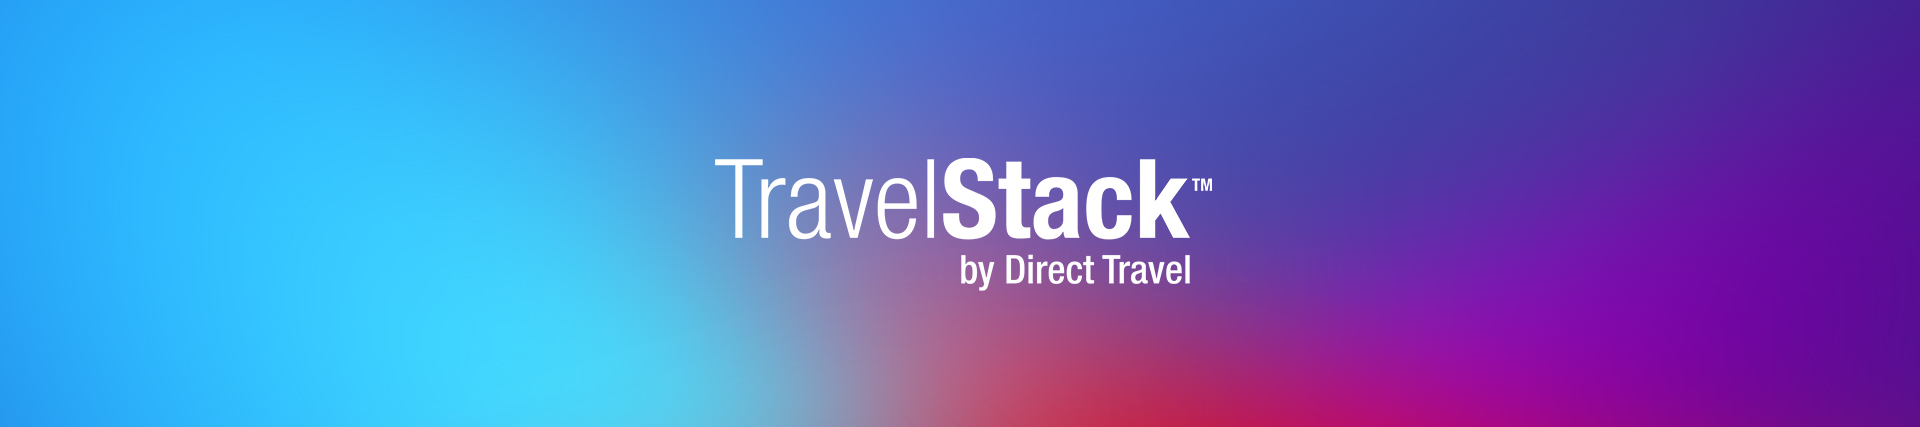 Travelstack Giveaway